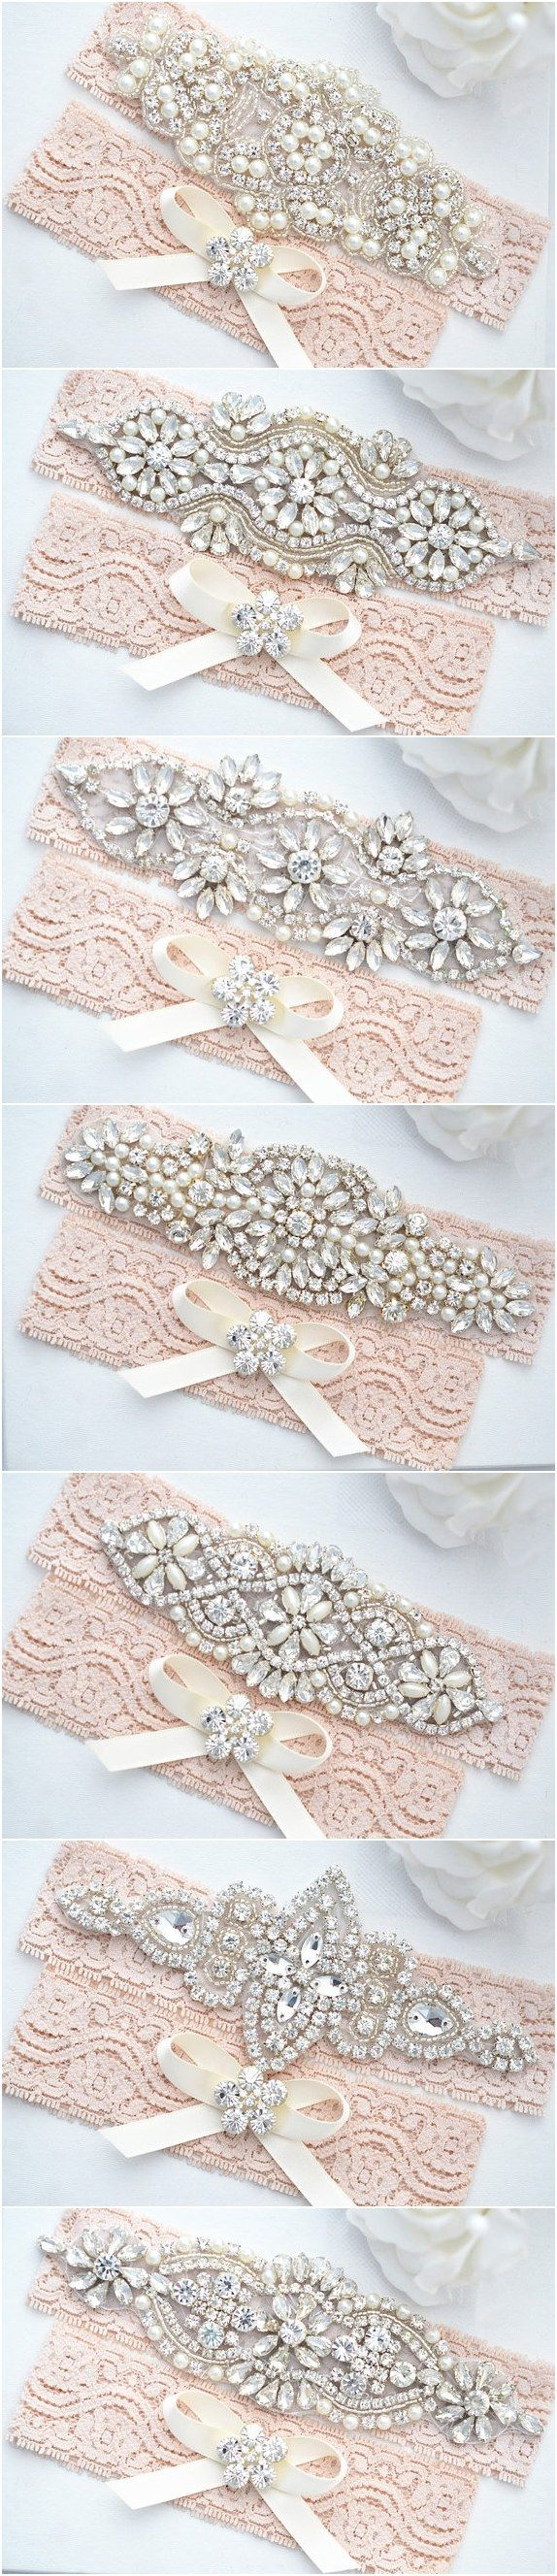 Blush Pink Lace Wedding Garter Sets / http://www.deerpearlflowers.com/wedding-garters-sets-from-etsy/4/